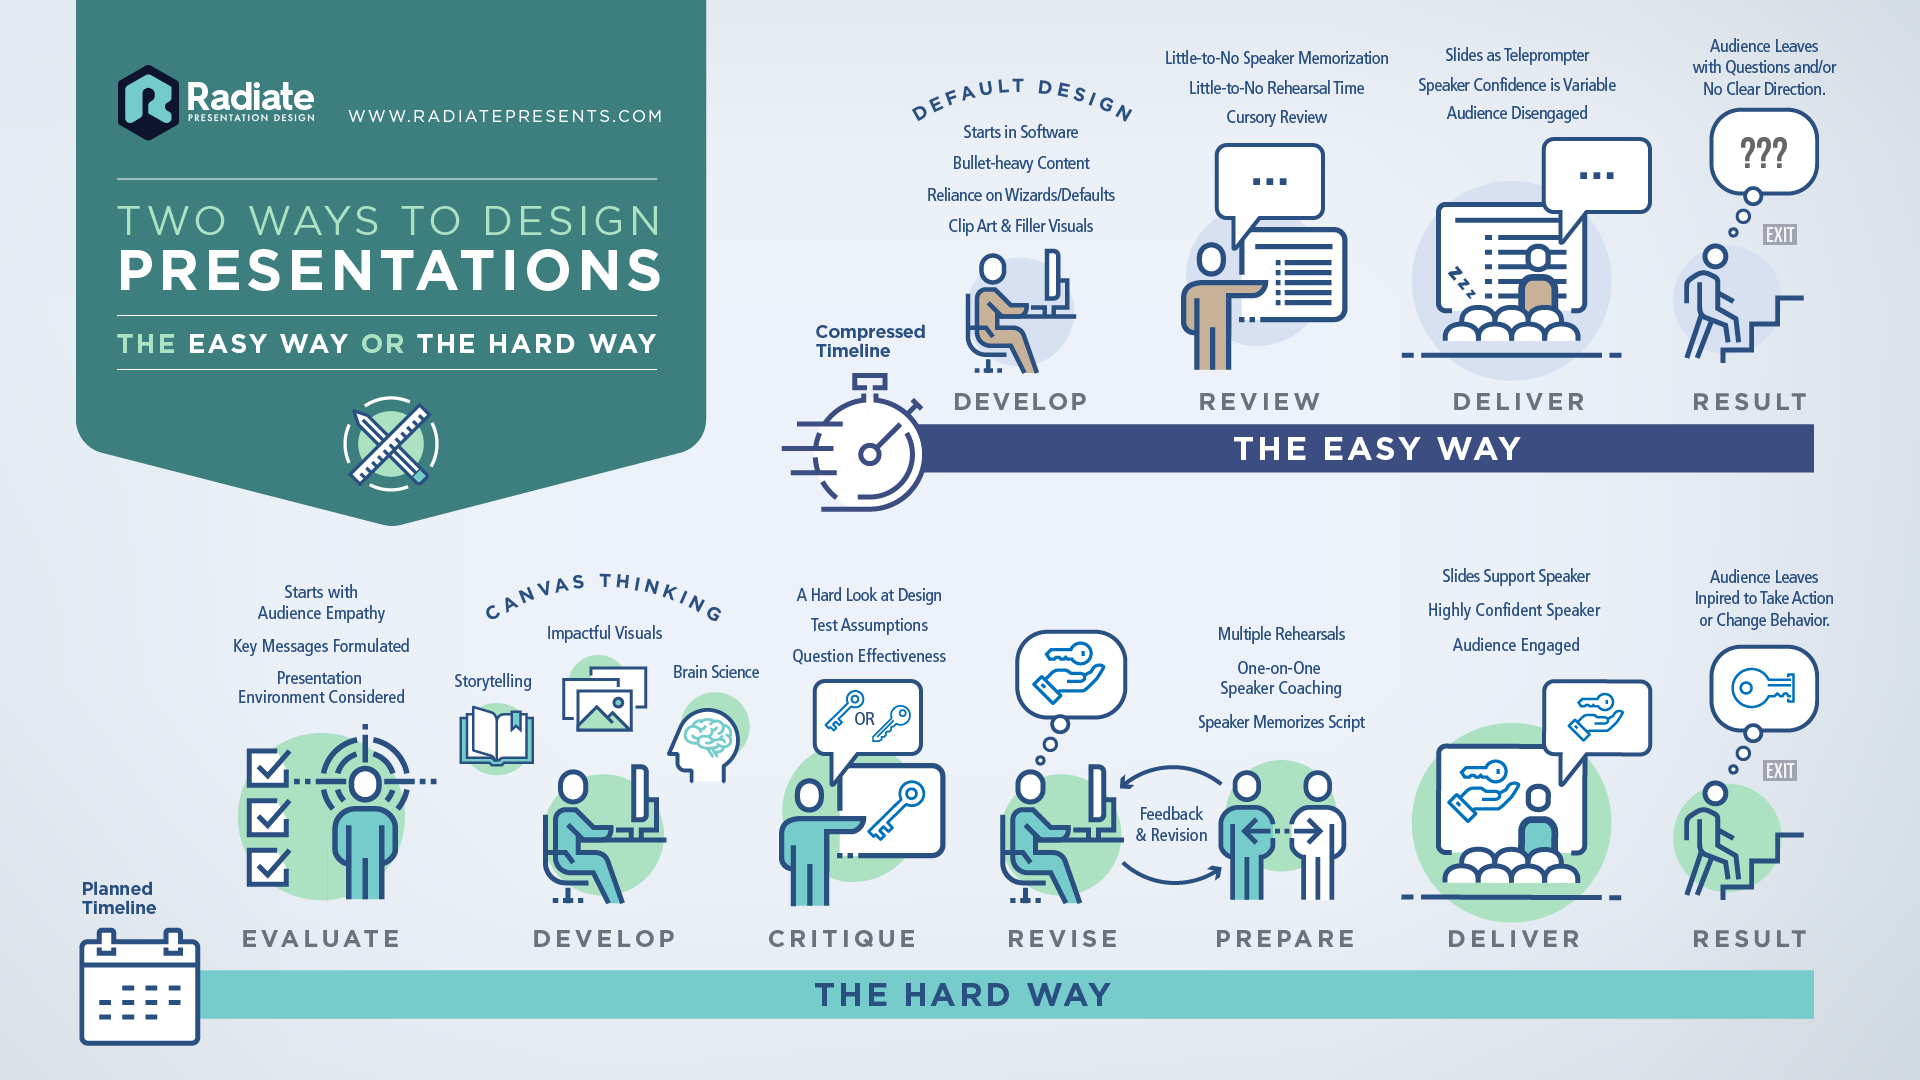 Download a PDF of this infographic  here.